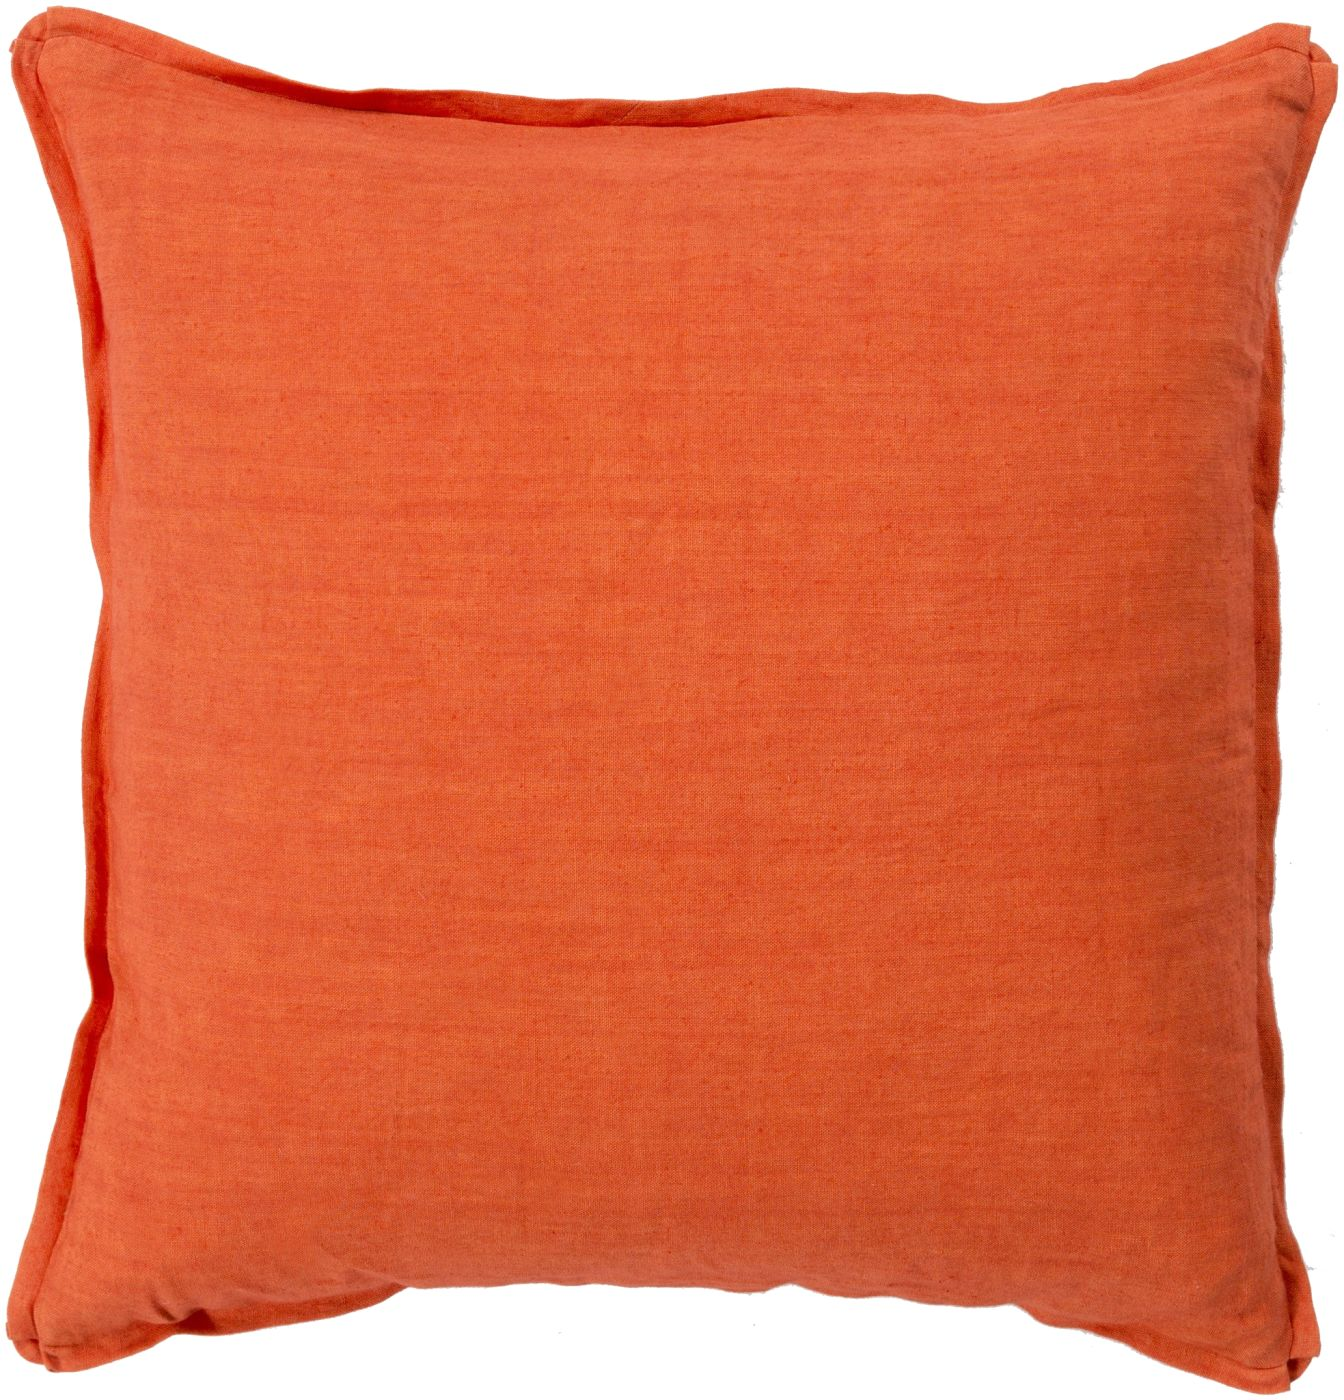 Throw Pillow Warehouse : Surya Solid Throw Pillow Orange SL003-2222D. Only $75.60 at Contemporary Furniture Warehouse.